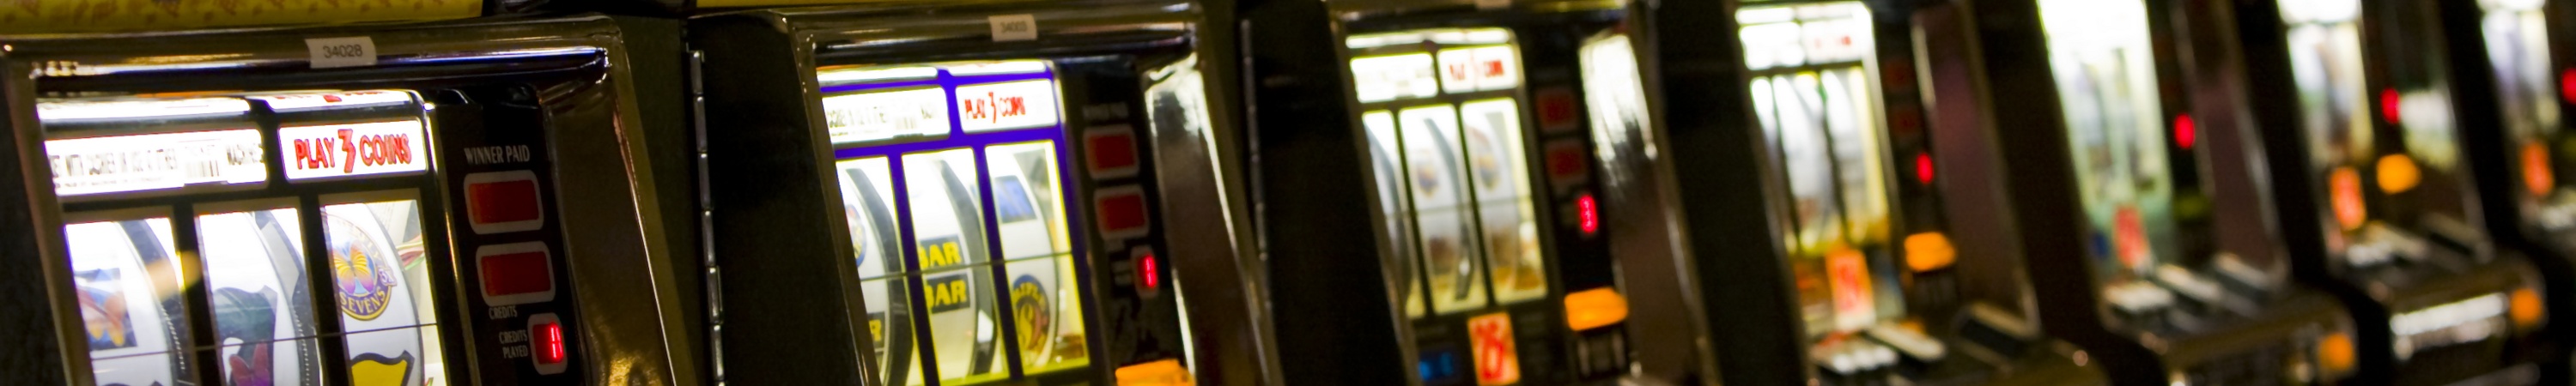 Line of Electronic Gaming Machines (Pokies)